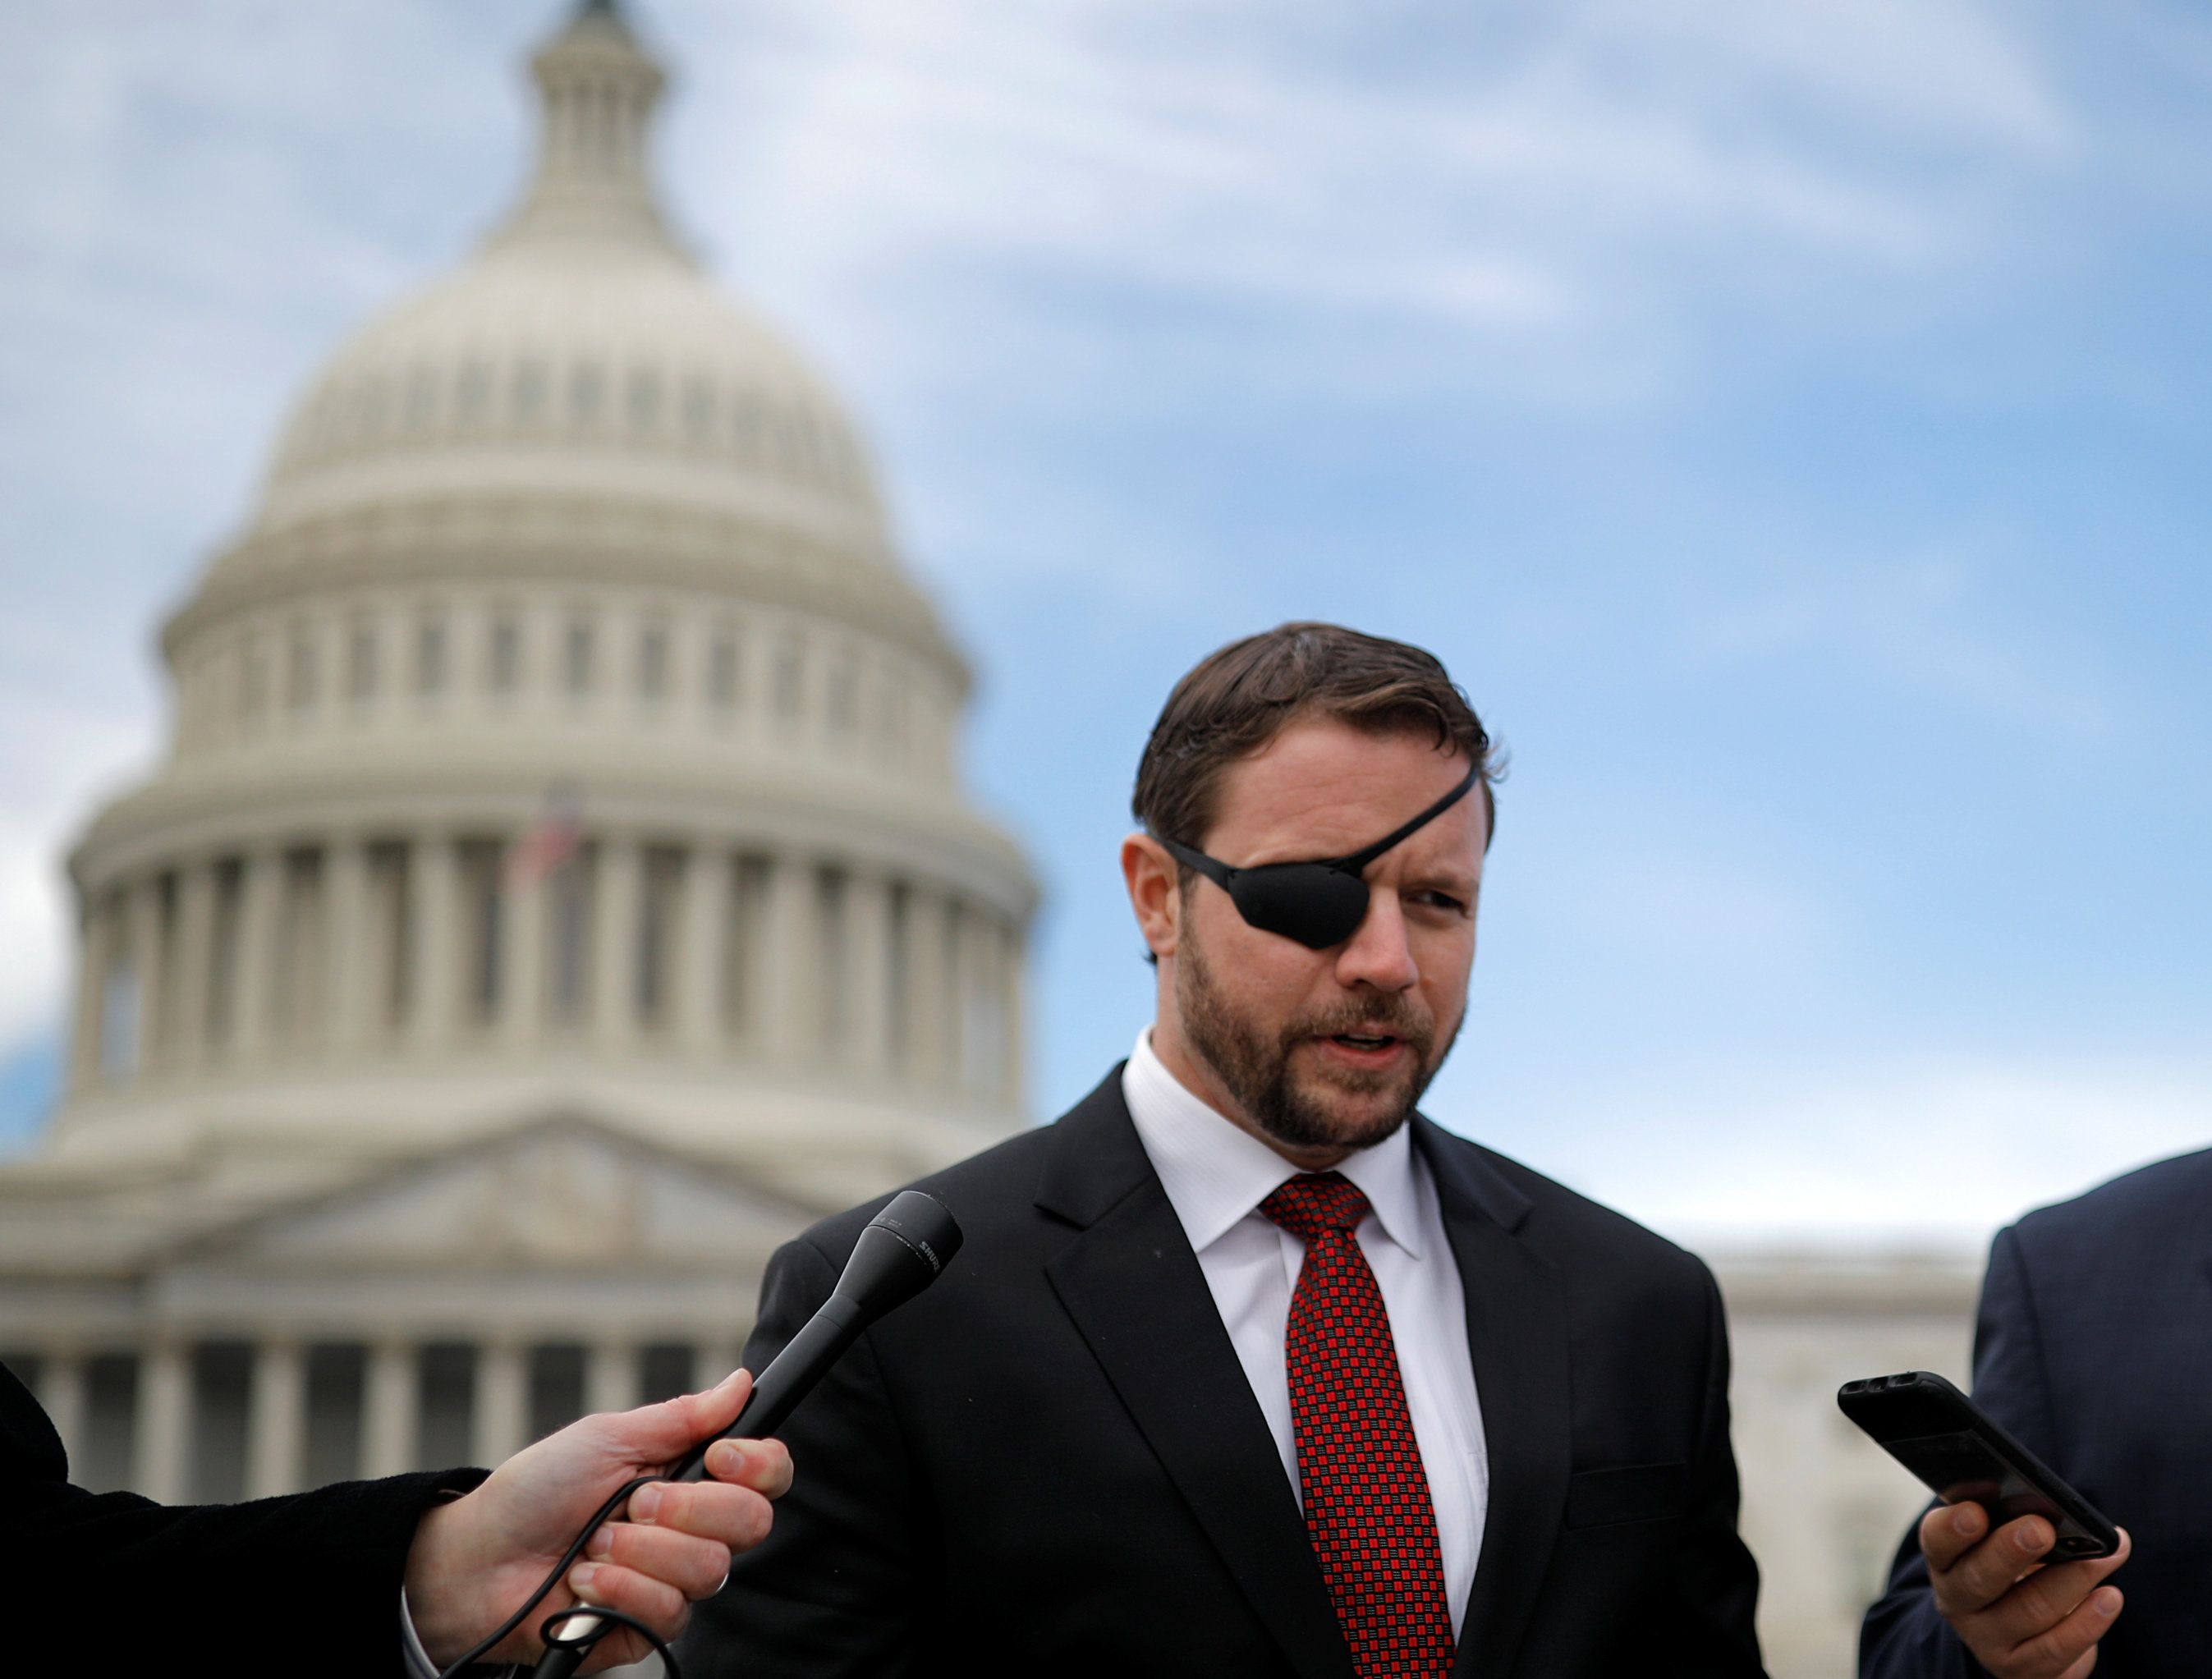 Republican Representative-elect Dan Crenshaw talks with reporters as he arrives for a class photo with incoming newly elected members of the U.S. House of Representatives on Capitol Hill in Washington, U.S., November 14, 2018. REUTERS/Kevin Lamarque